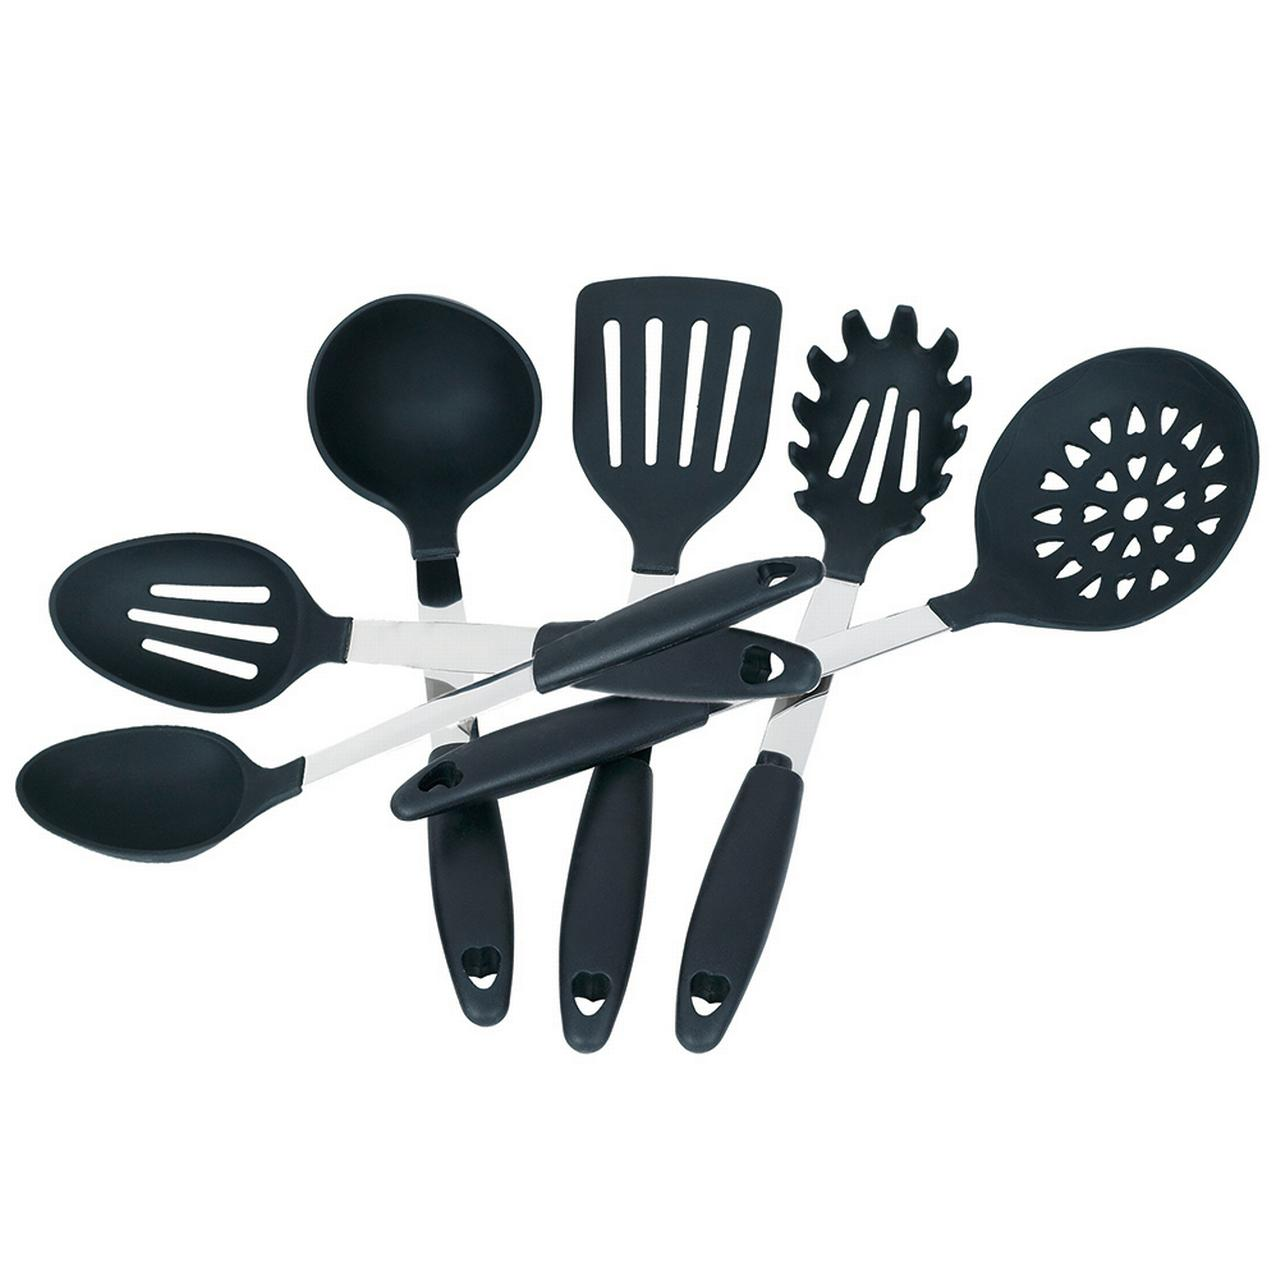 JYPC Set of 6 Silicone Cooking Utensil Set Tools Cookware Set Kitchen Gadgets (Black)